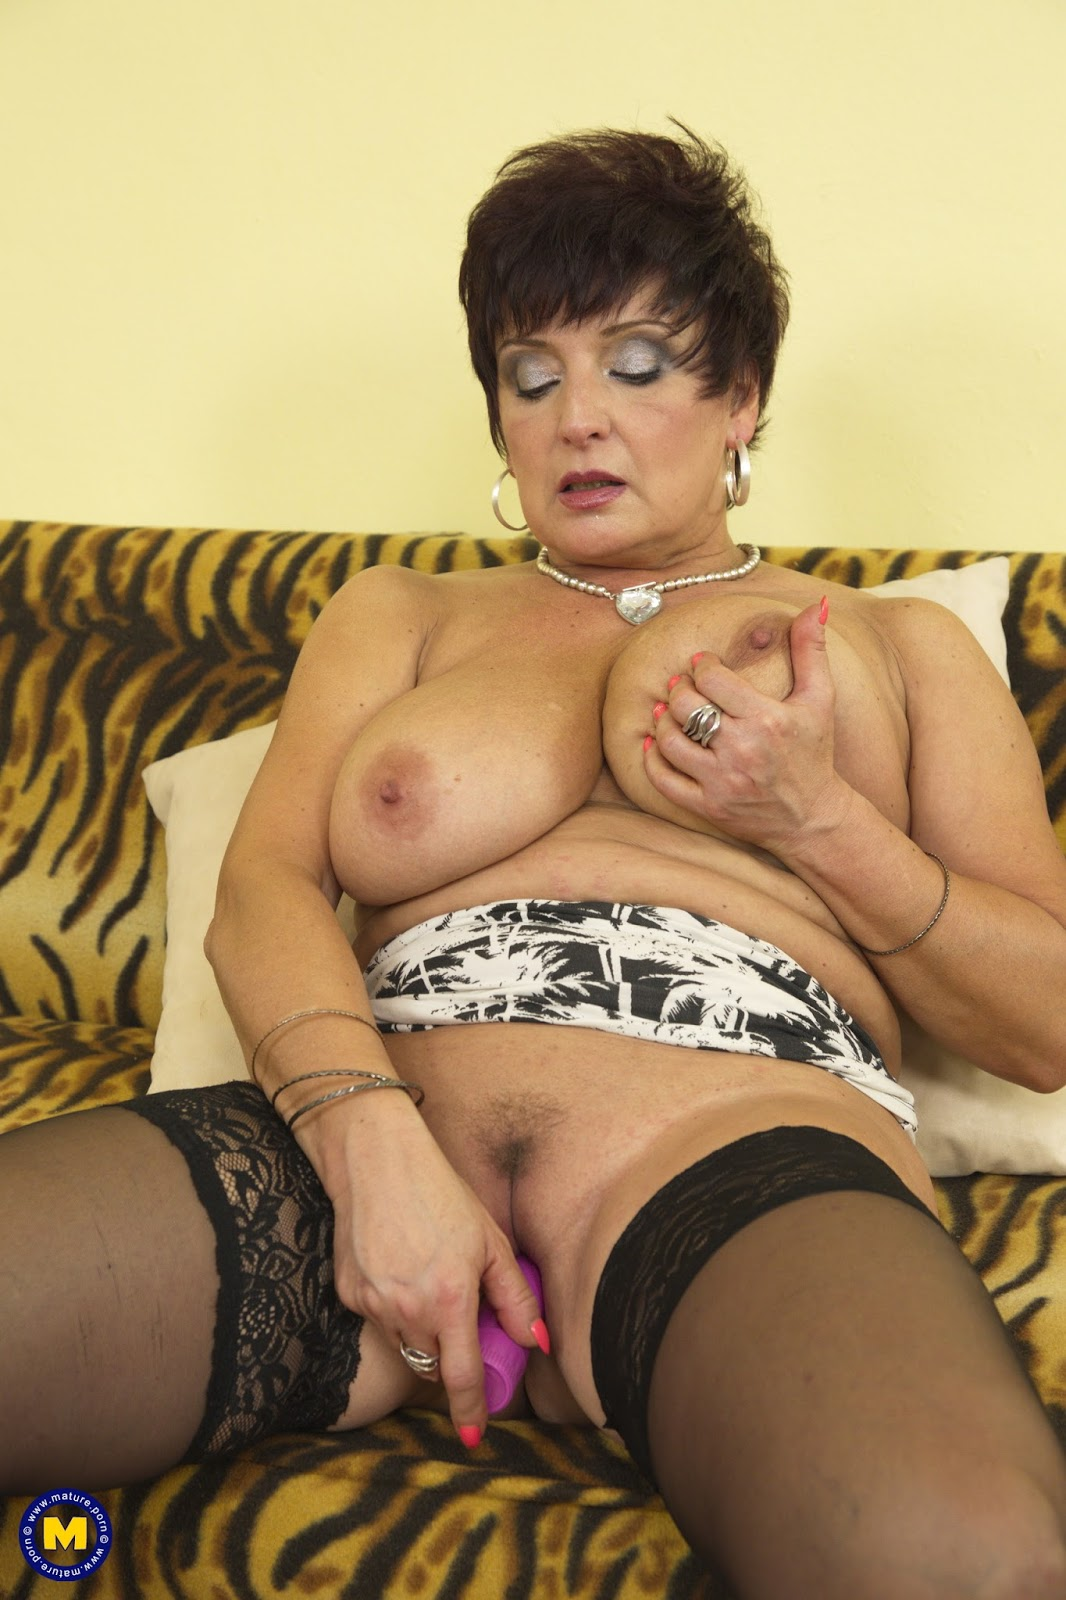 A french mature martine gangbanged outdoor - 3 part 8